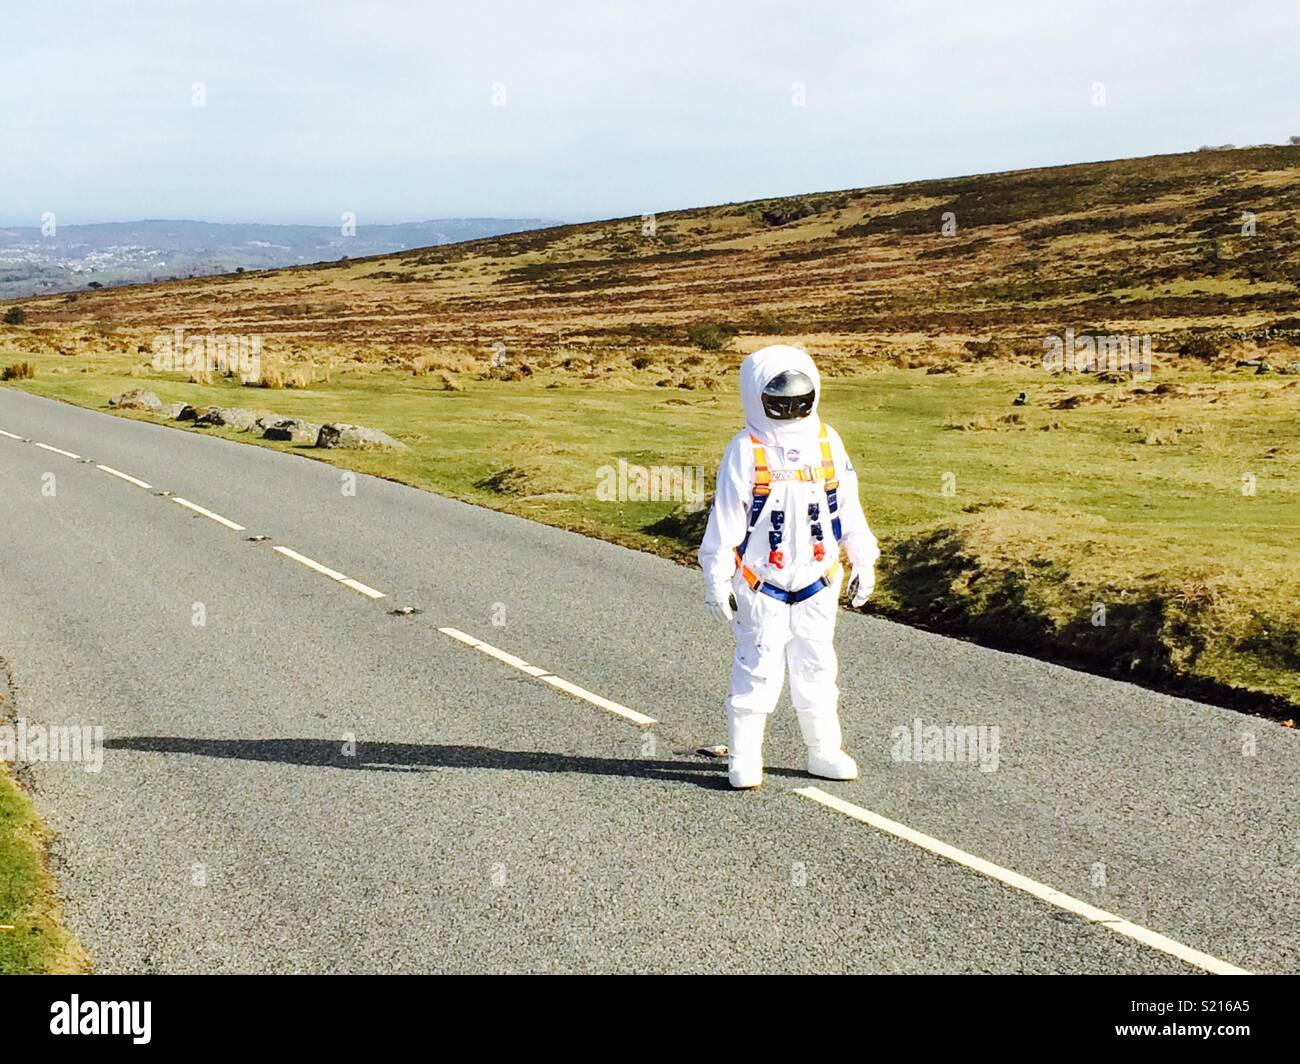 Dans la route de l'astronaute Photo Stock